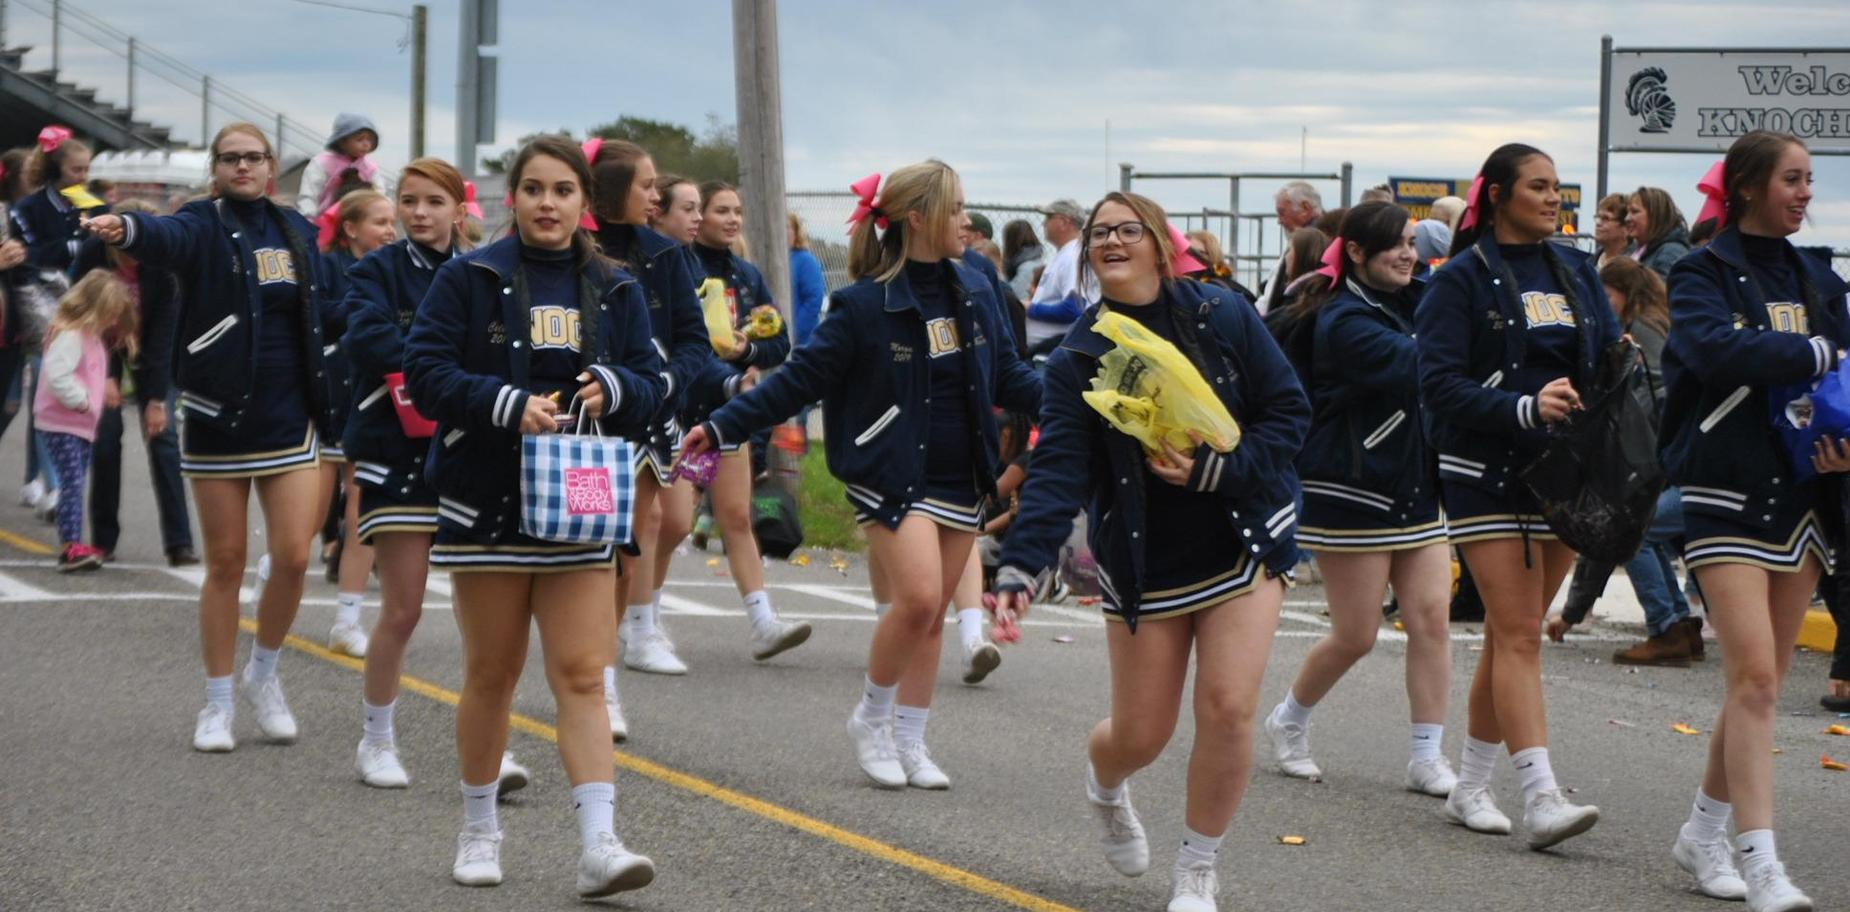 Knoch Cheer Squad in parade